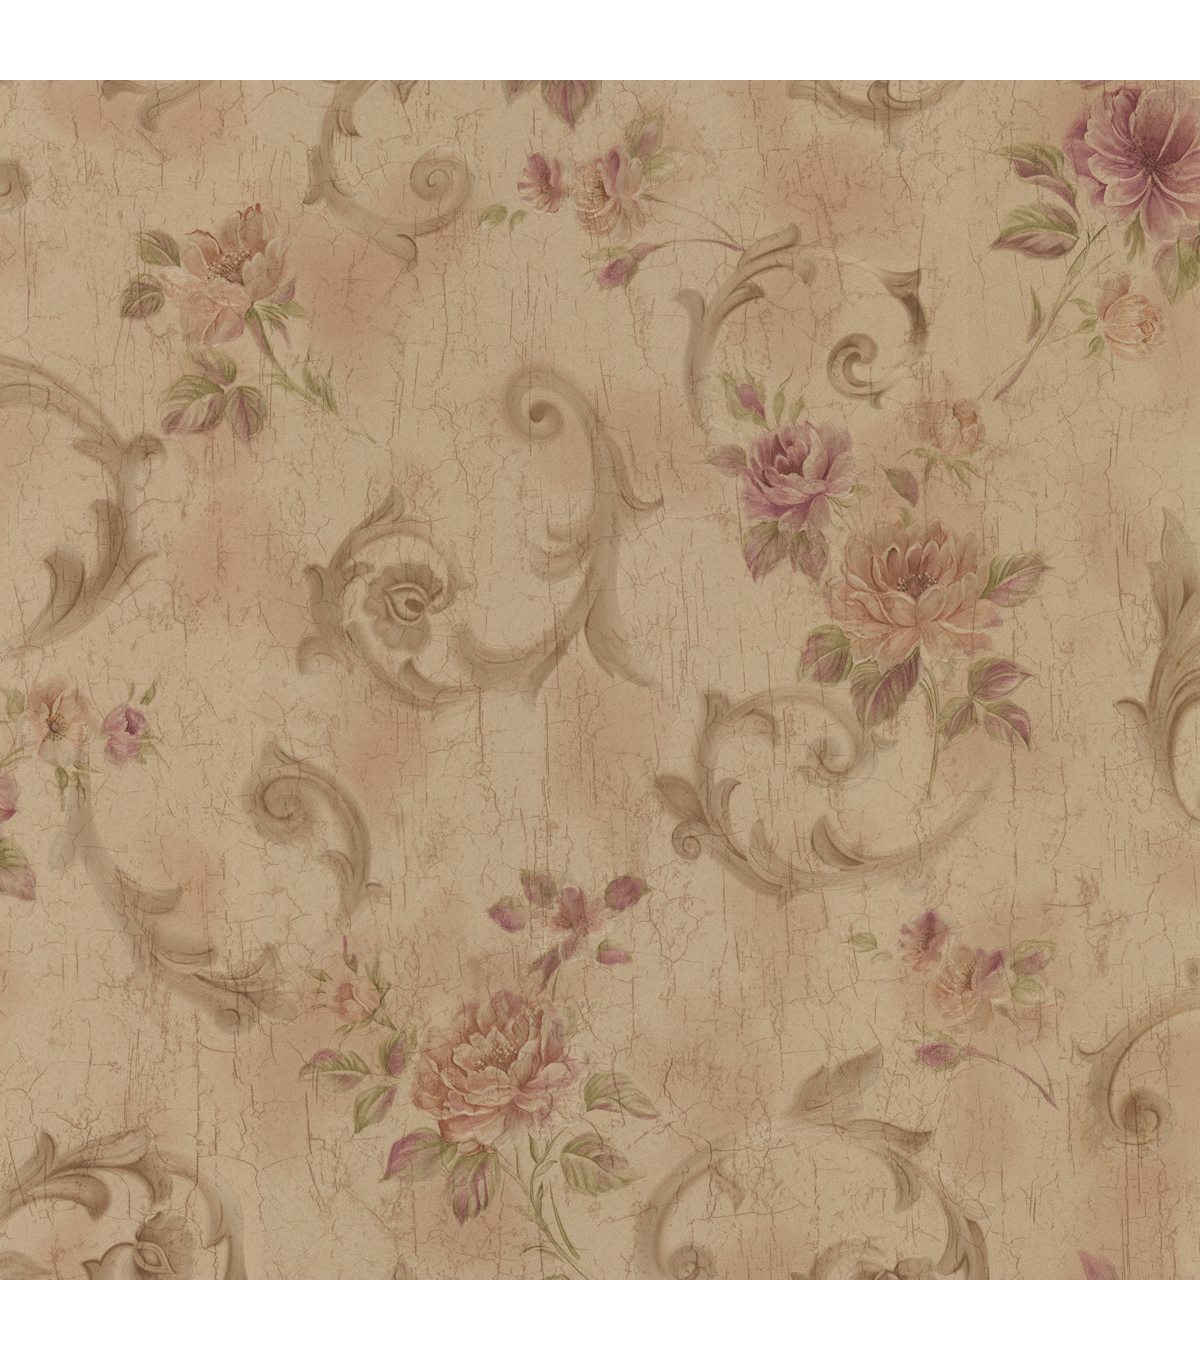 Julietta Brass Floral Scroll Wallpaper